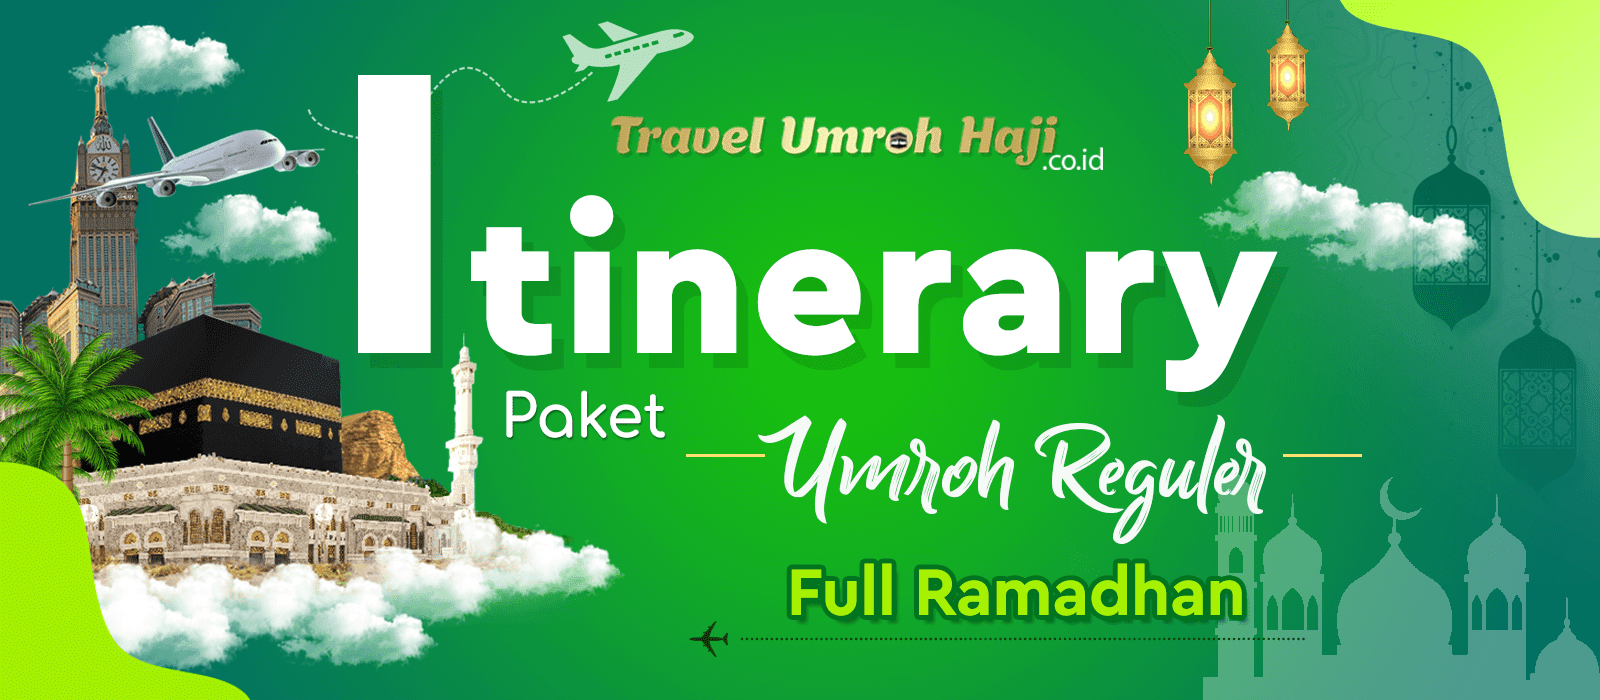 Program Itinerary Umroh 30 Hari Full Ramadhan Direct